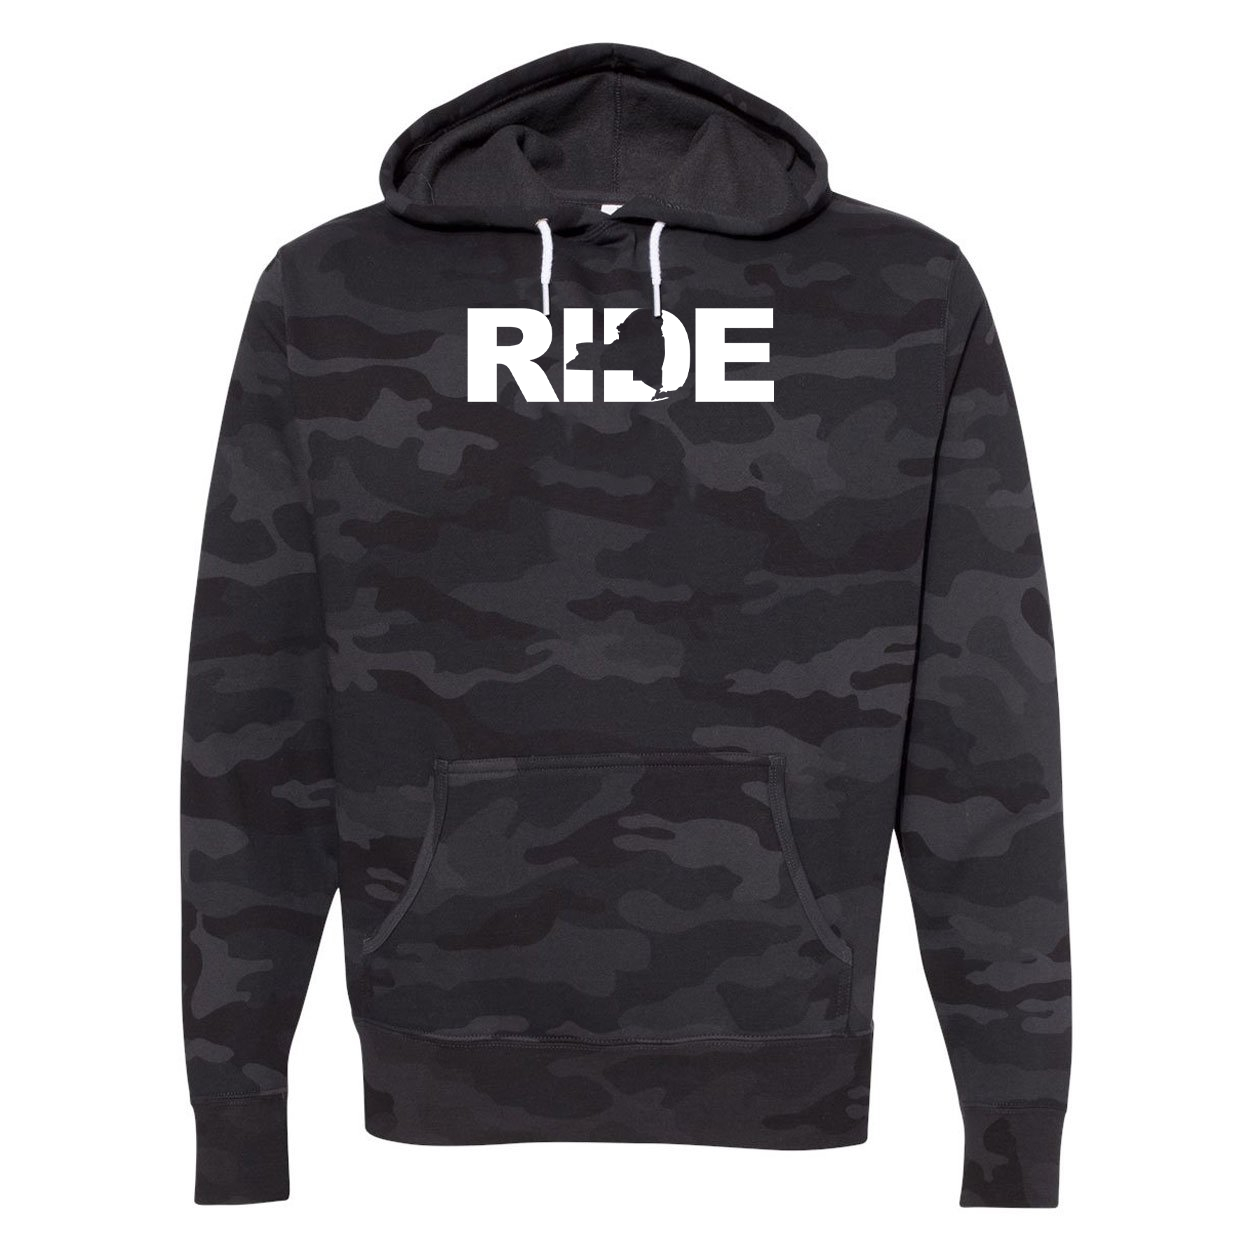 Ride New York Classic Unisex Hooded Sweatshirt Black Camo (White Logo)